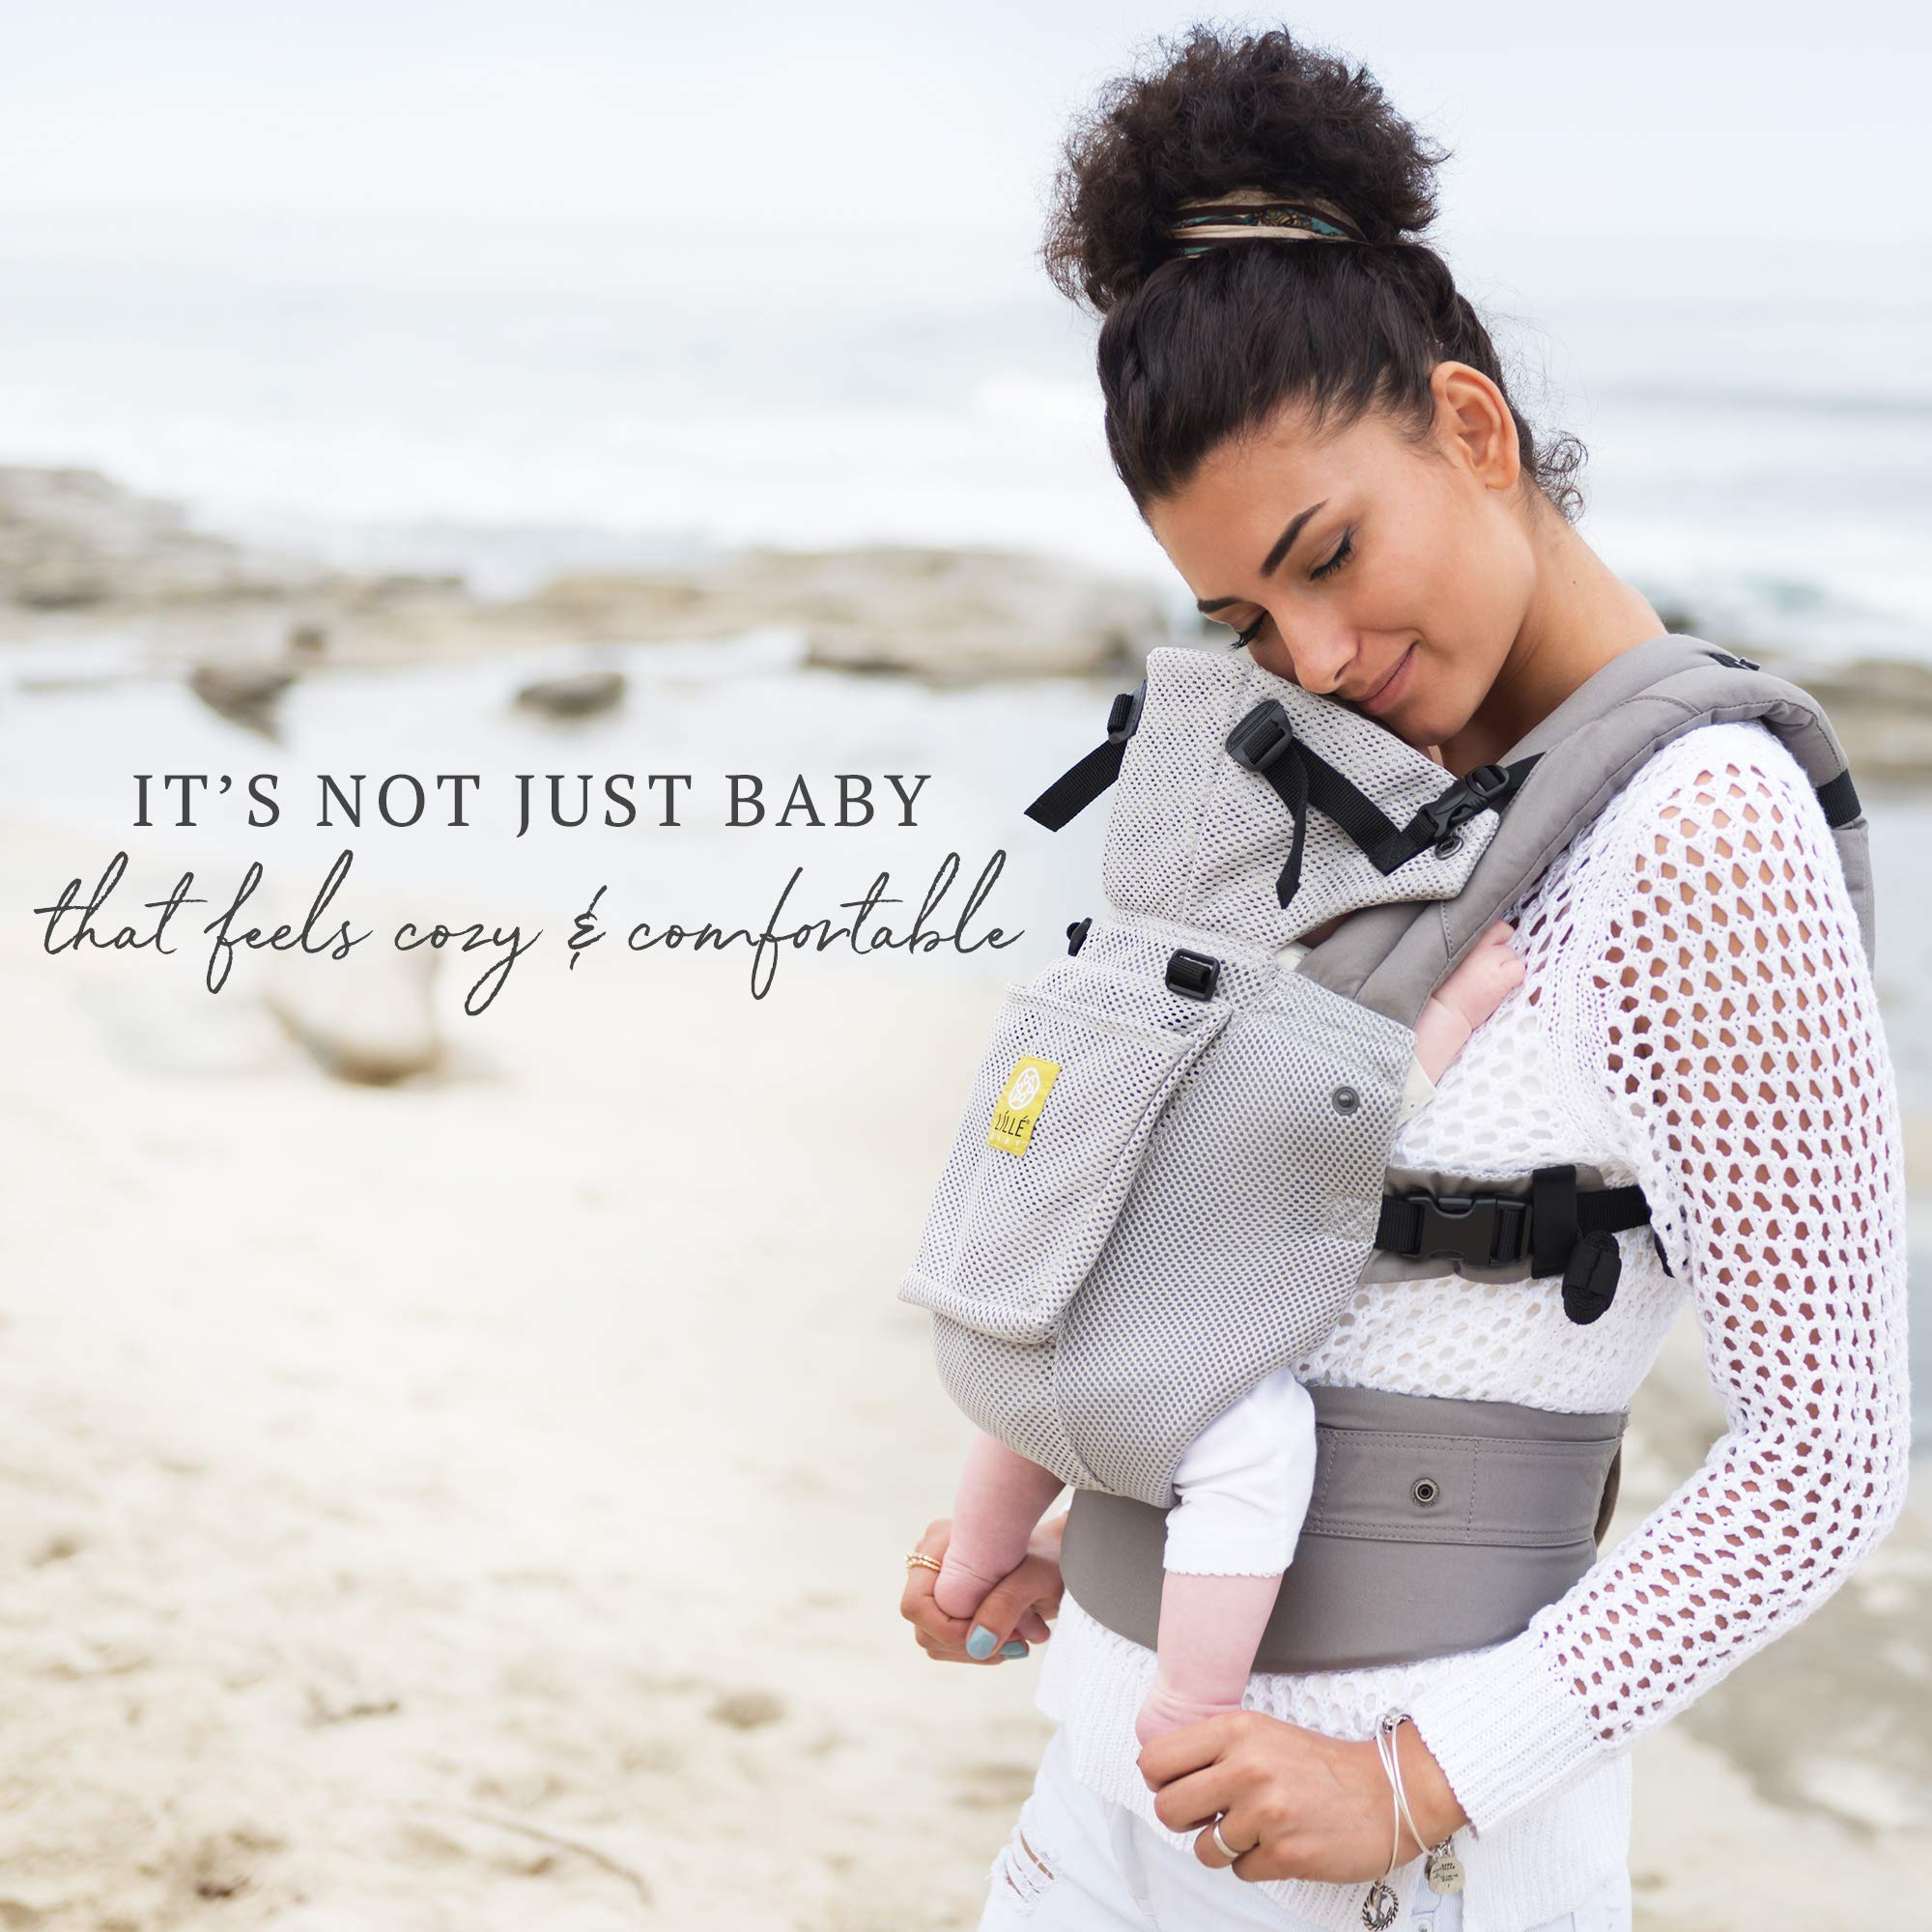 Lillebaby The Complete Airflow 360° Ergonomic Six-Position Baby & Child Carrier, Silver by LILLEbaby (Image #4)